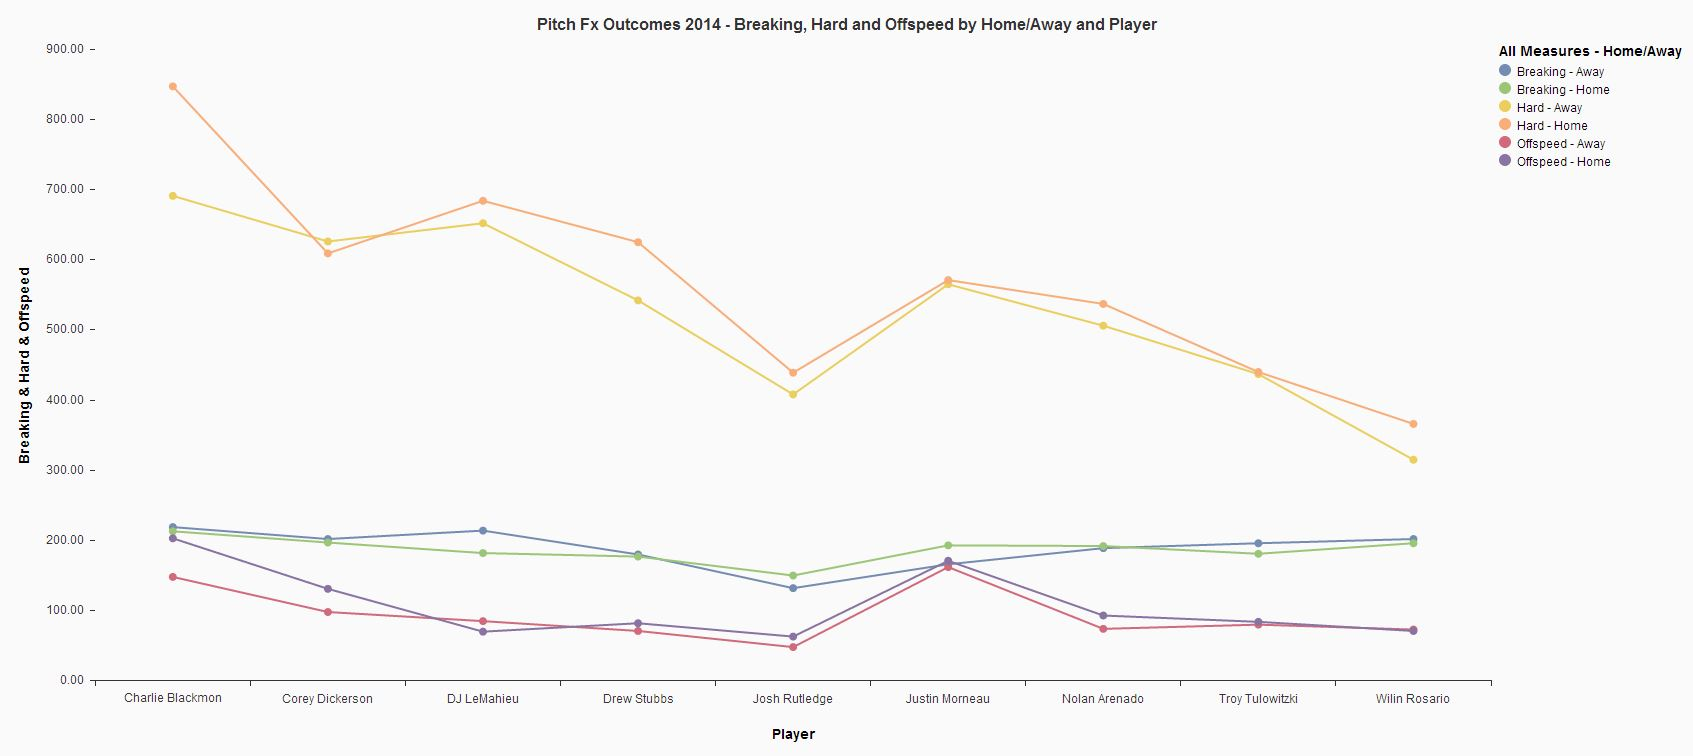 Pitch FX Outcomes 2014 Breaking Hard Offspeed by Home Away and Player.JPG